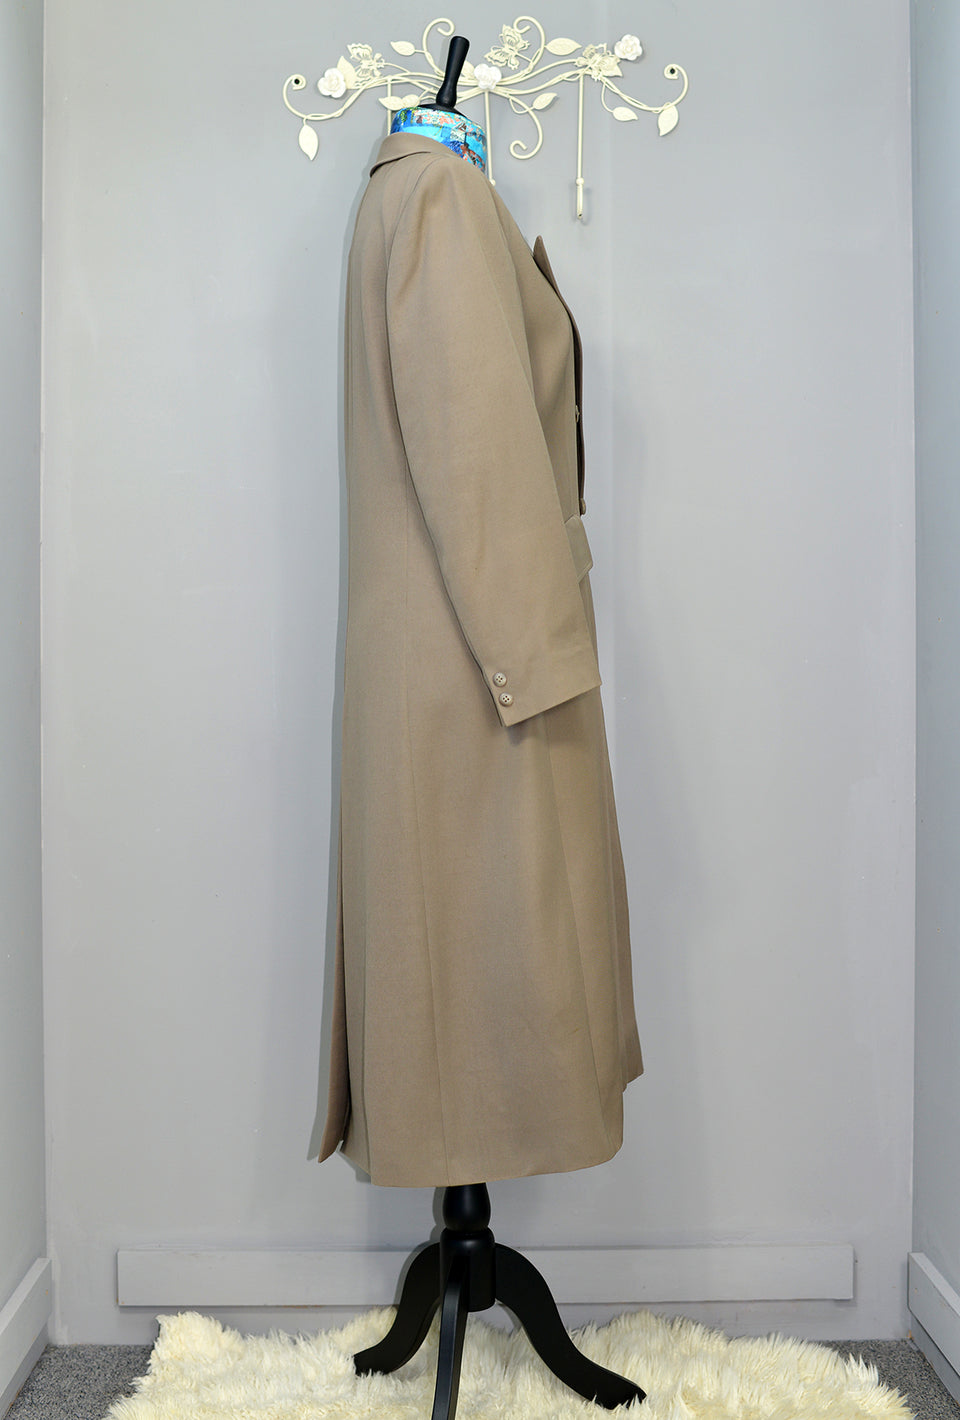 JAEGER Women's Double Breasted Longline Wool Overcoat, Size 14/16. Vintage.